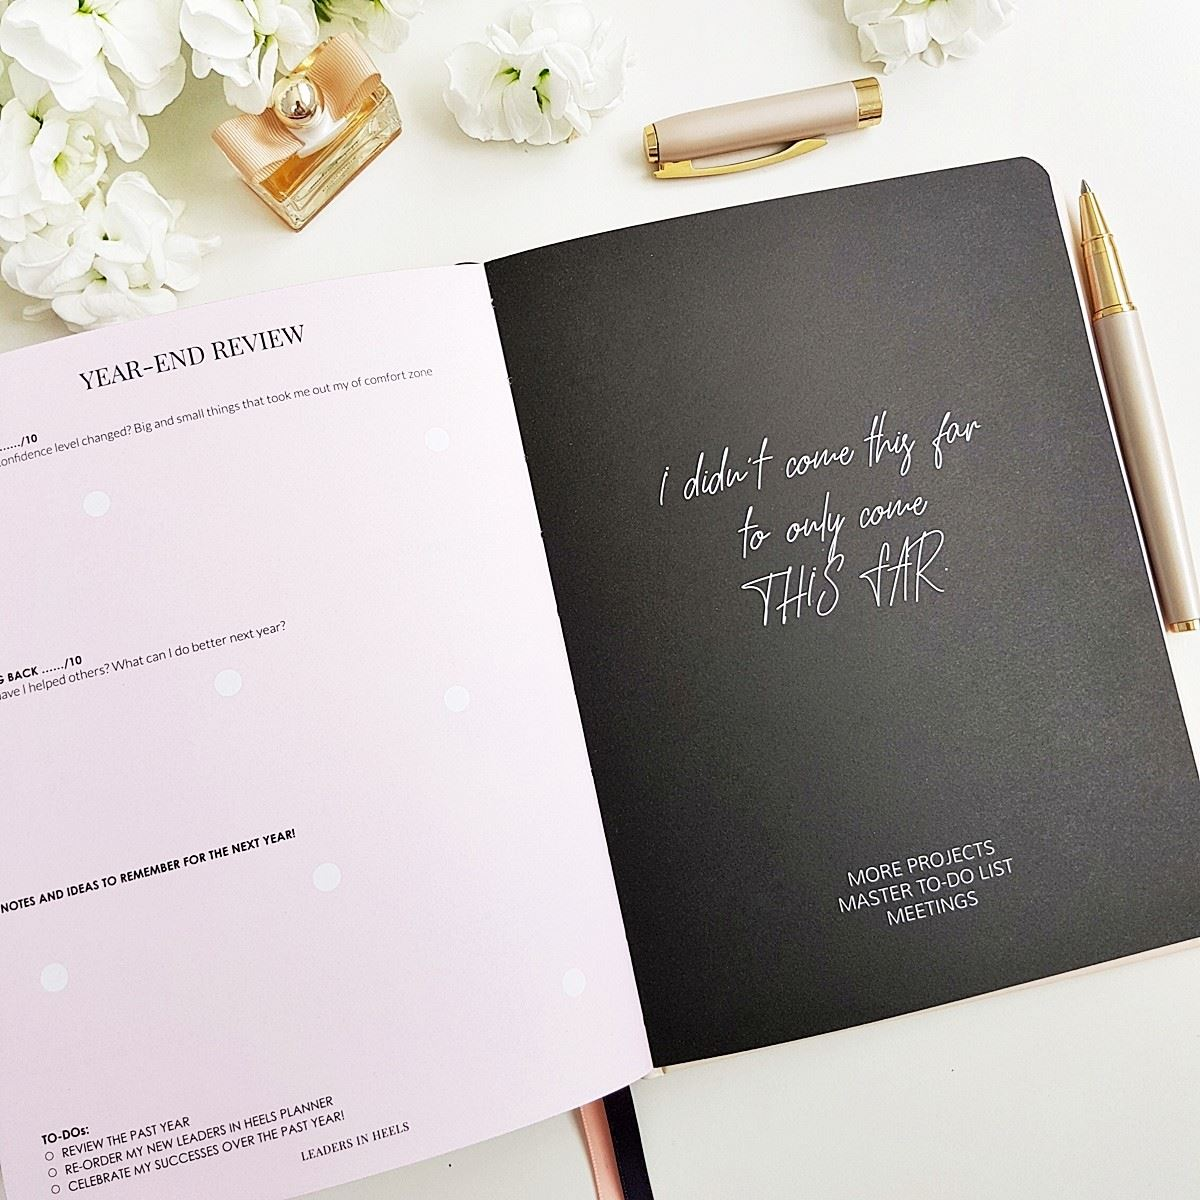 The Leaders in Heels Planner Make It Happen - Year end review